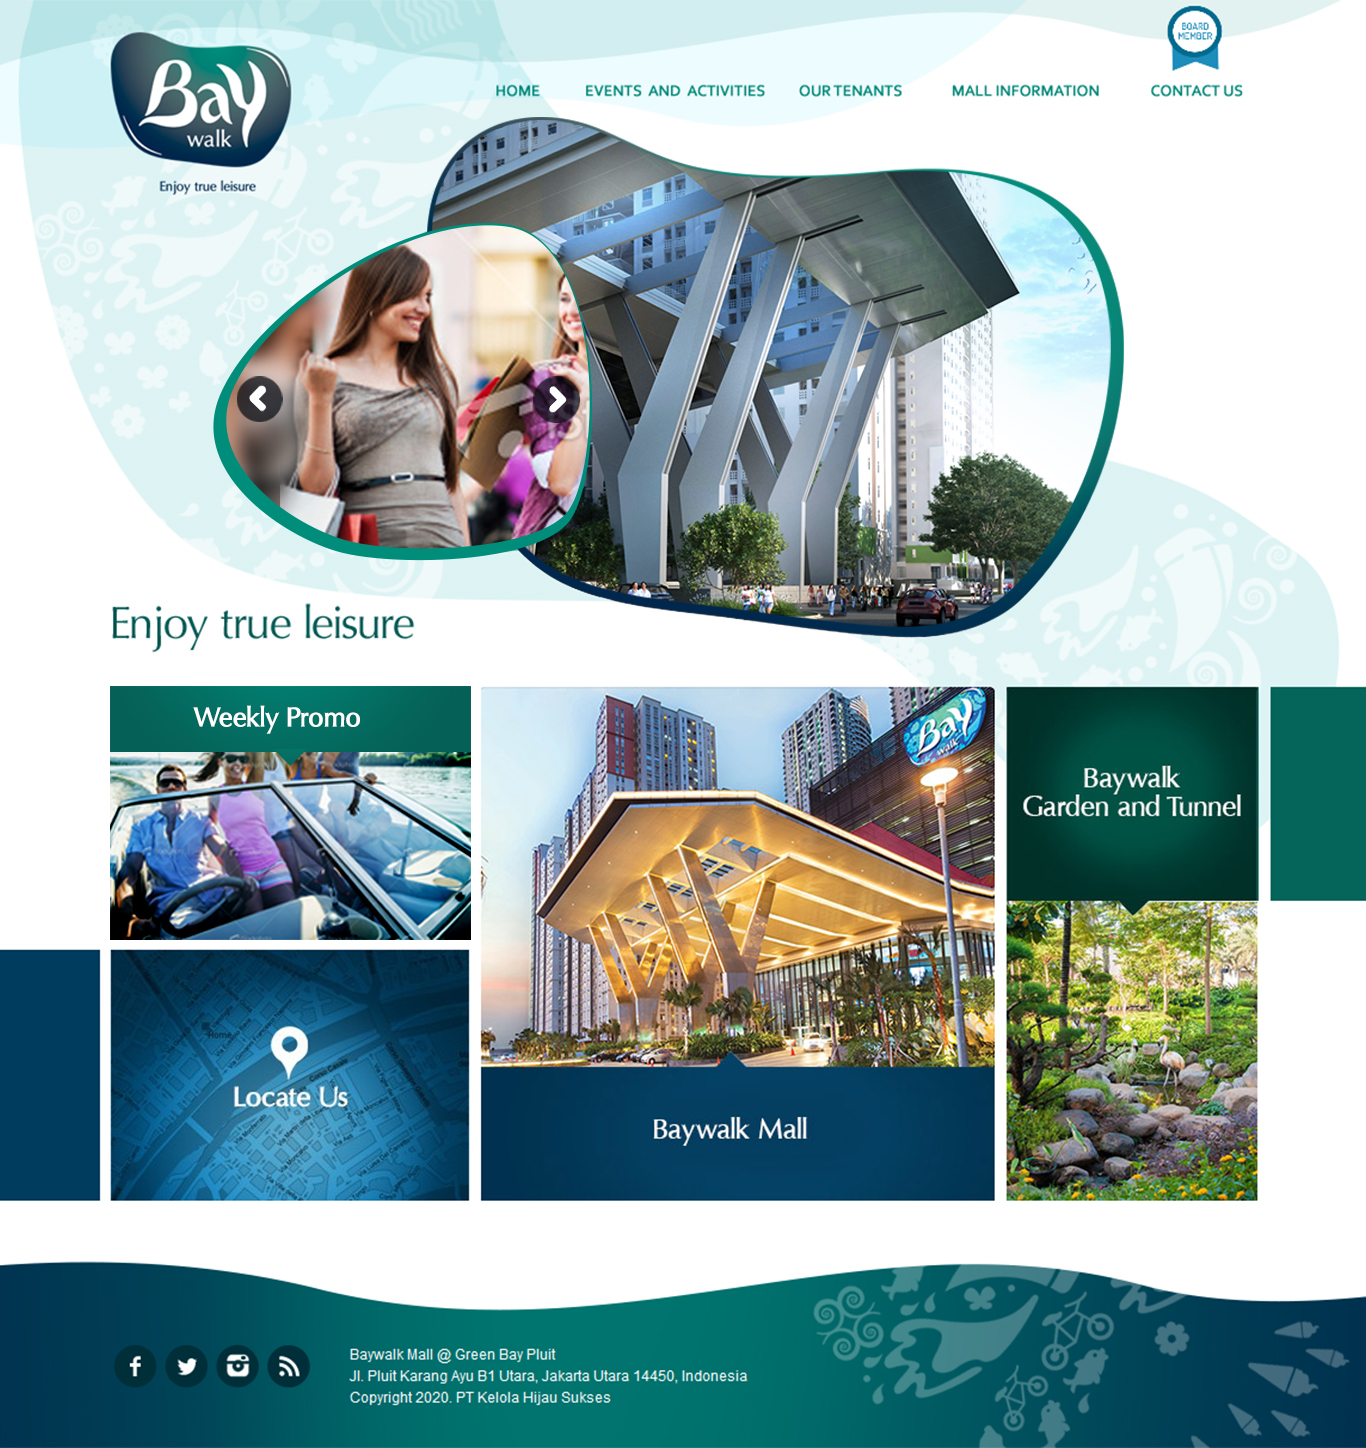 Komunigrafik ui-ux, web design and development Indonesia - Project Showcase and Portfolio Responsive Mobile, Mobile Apps, For Baywalk Mall Jakarta, Indonesia